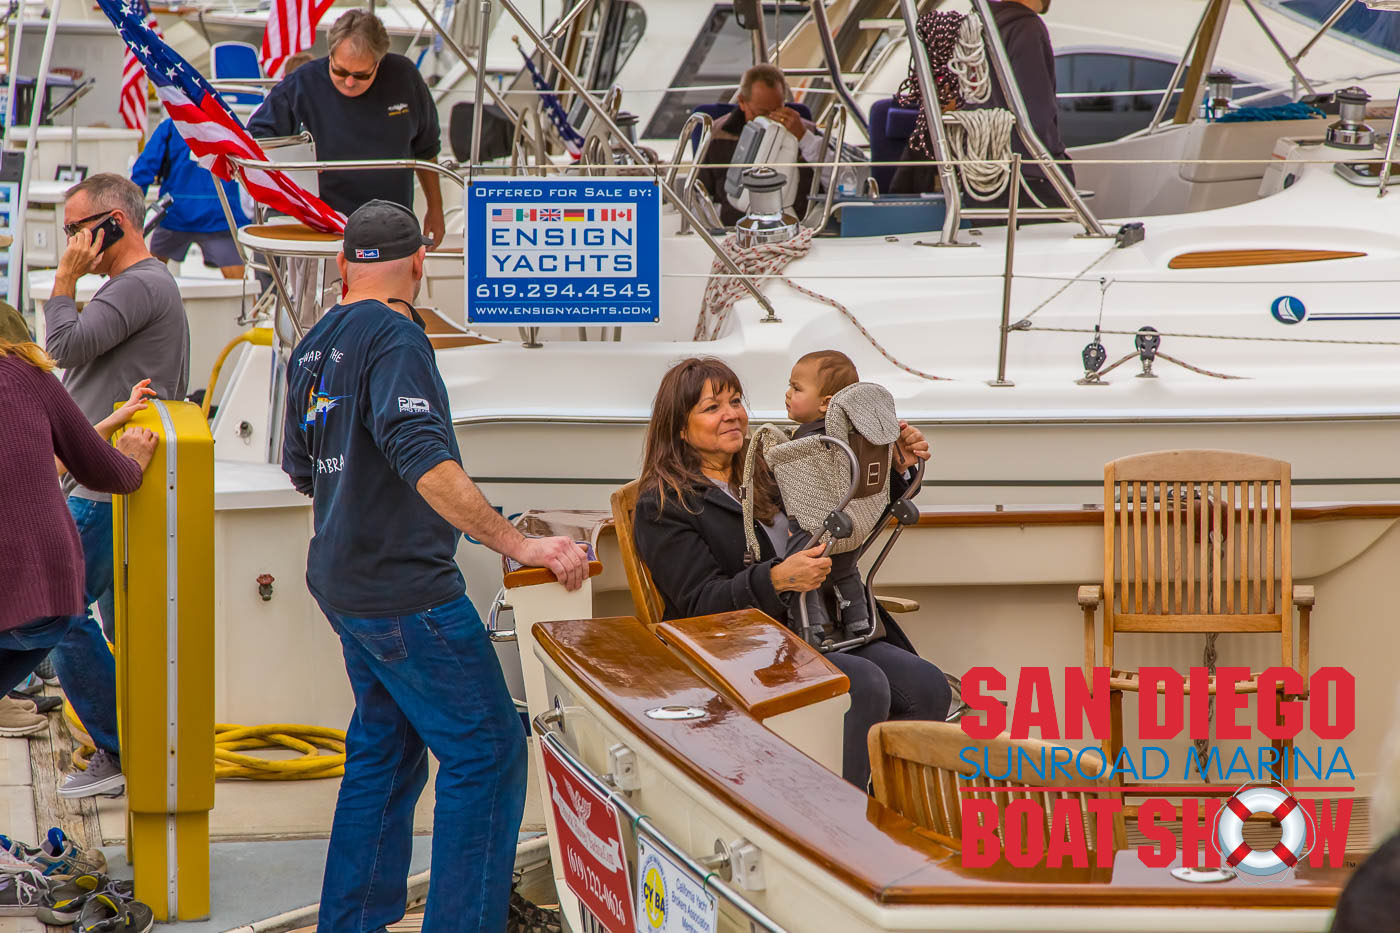 MED_SunroadBoatShow2016-7 copy